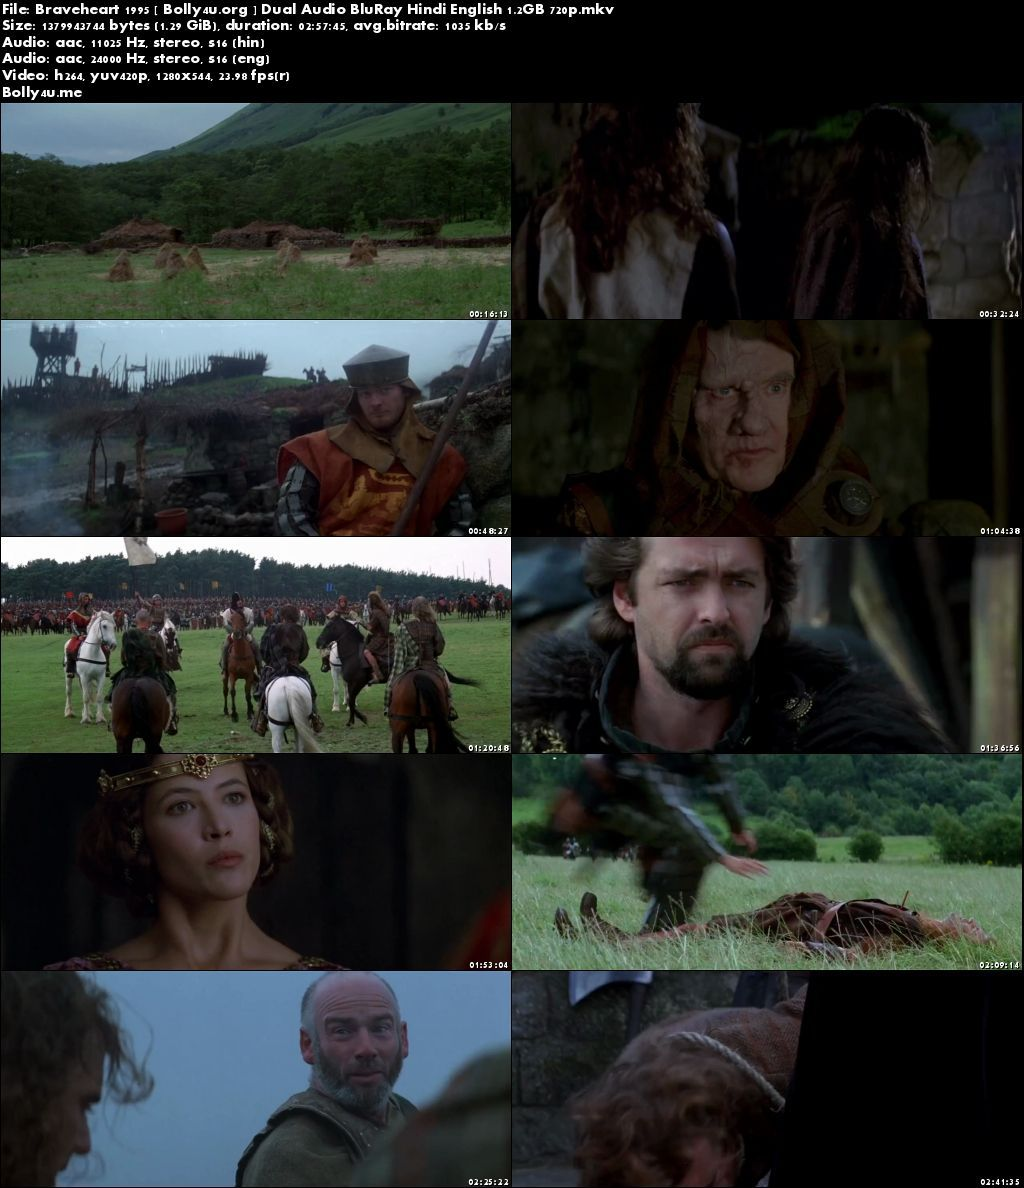 Braveheart 1995 BluRay 550MB Hindi Dubbed Dual Audio 480p Director